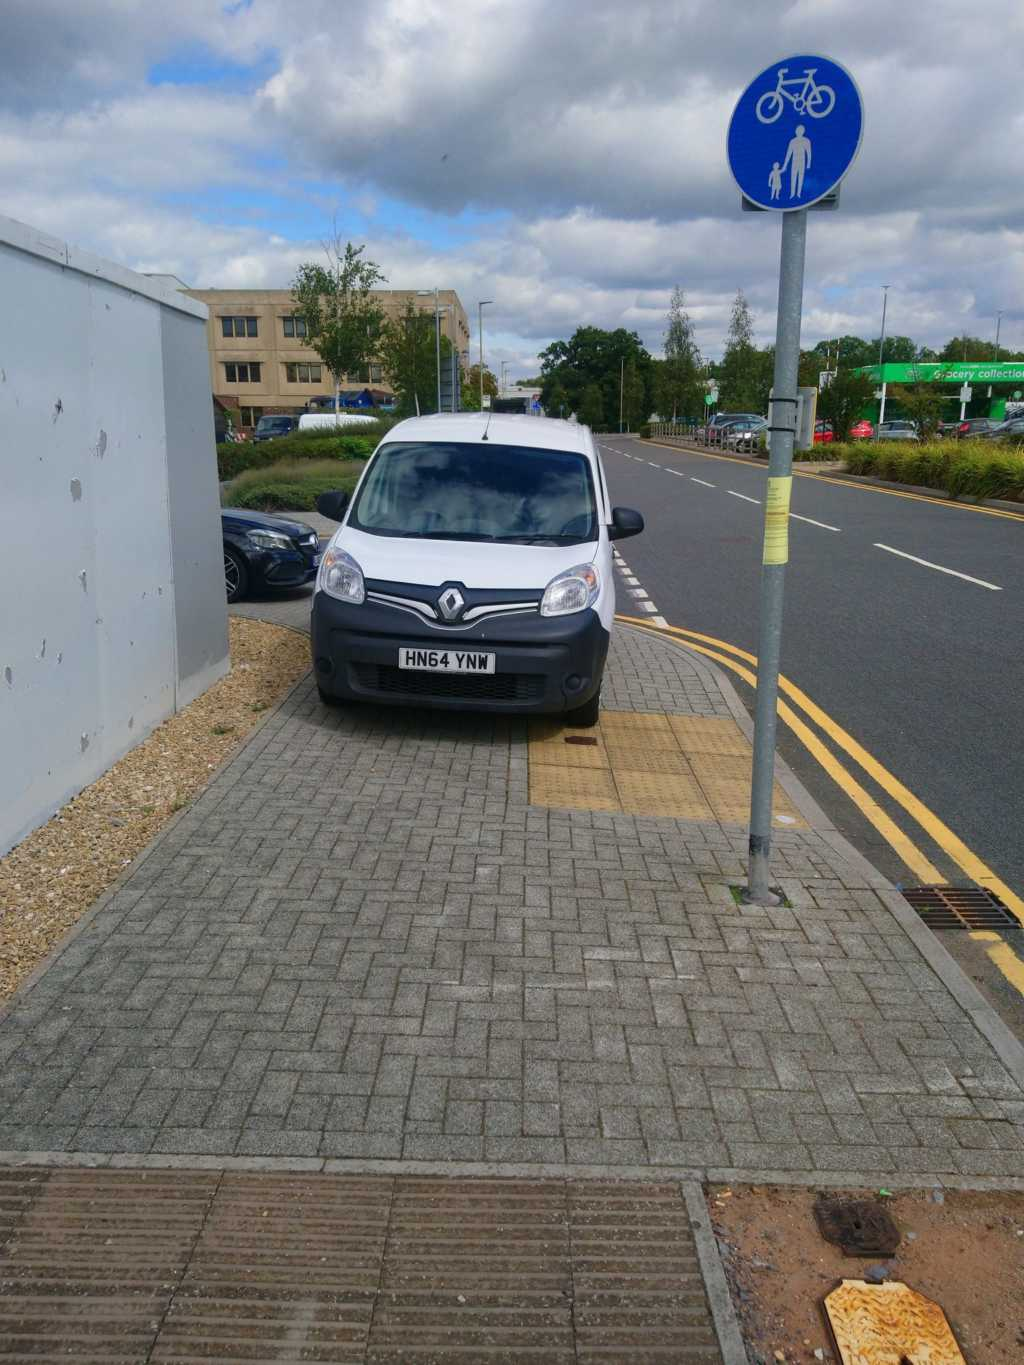 HN64 YNW displaying Selfish Parking